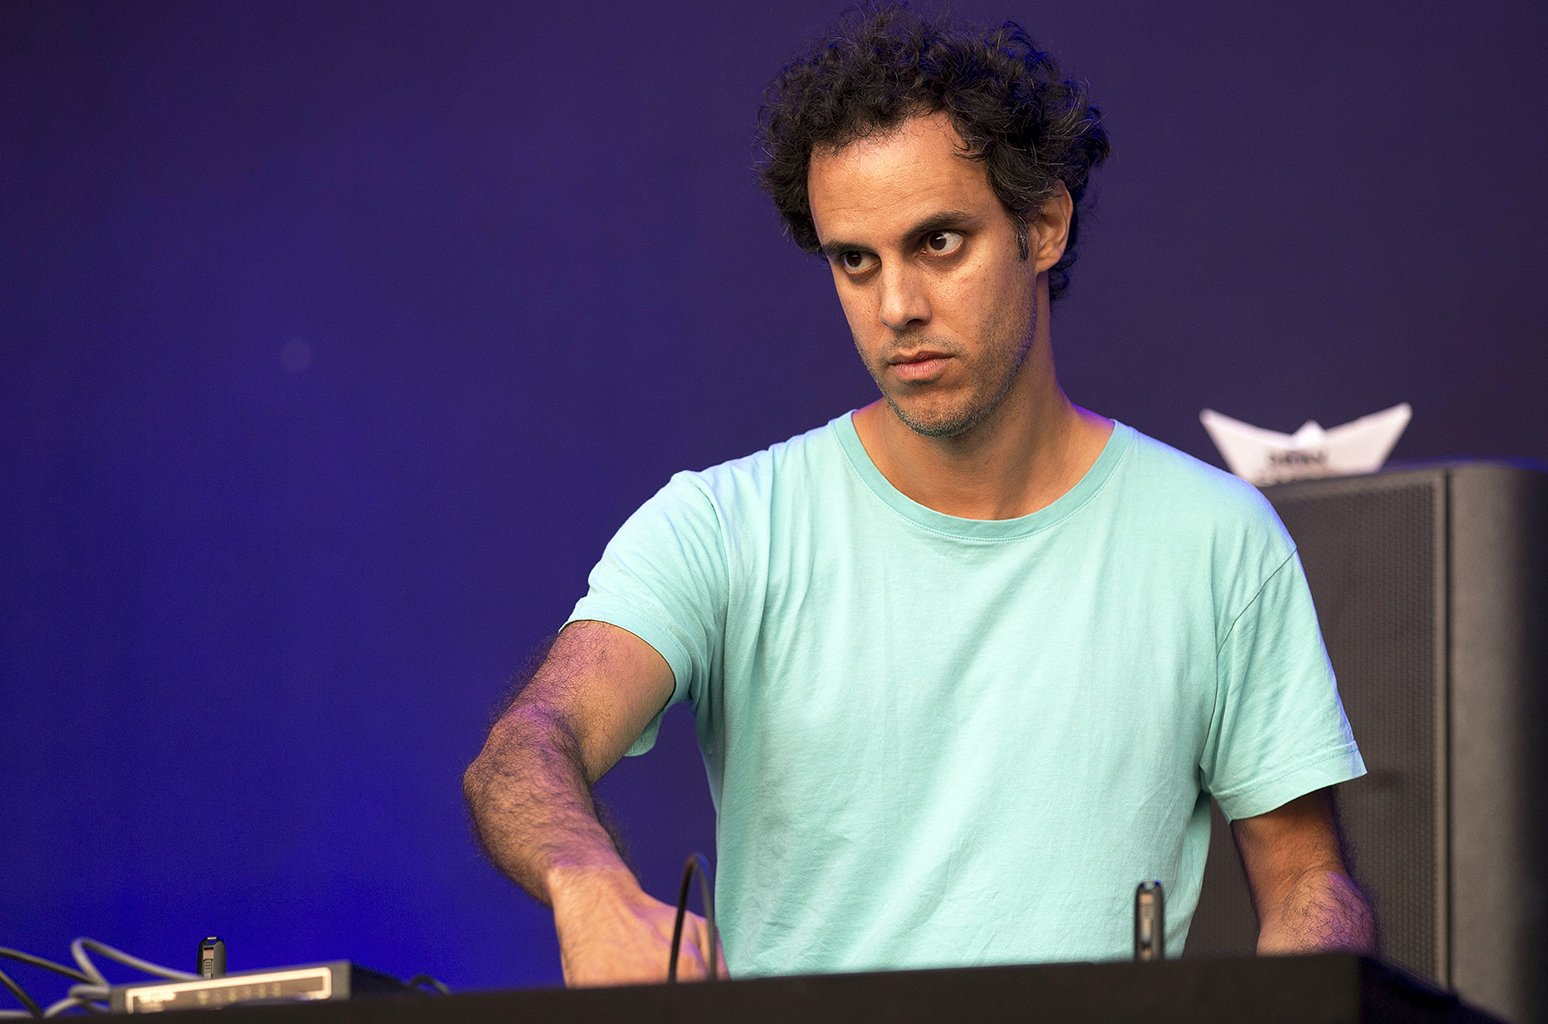 Is @FourTet trolling us on Spotify with a cryptic alias today?https://t.co/ueWZqPOpk7 https://t.co/id9nbX2GDp